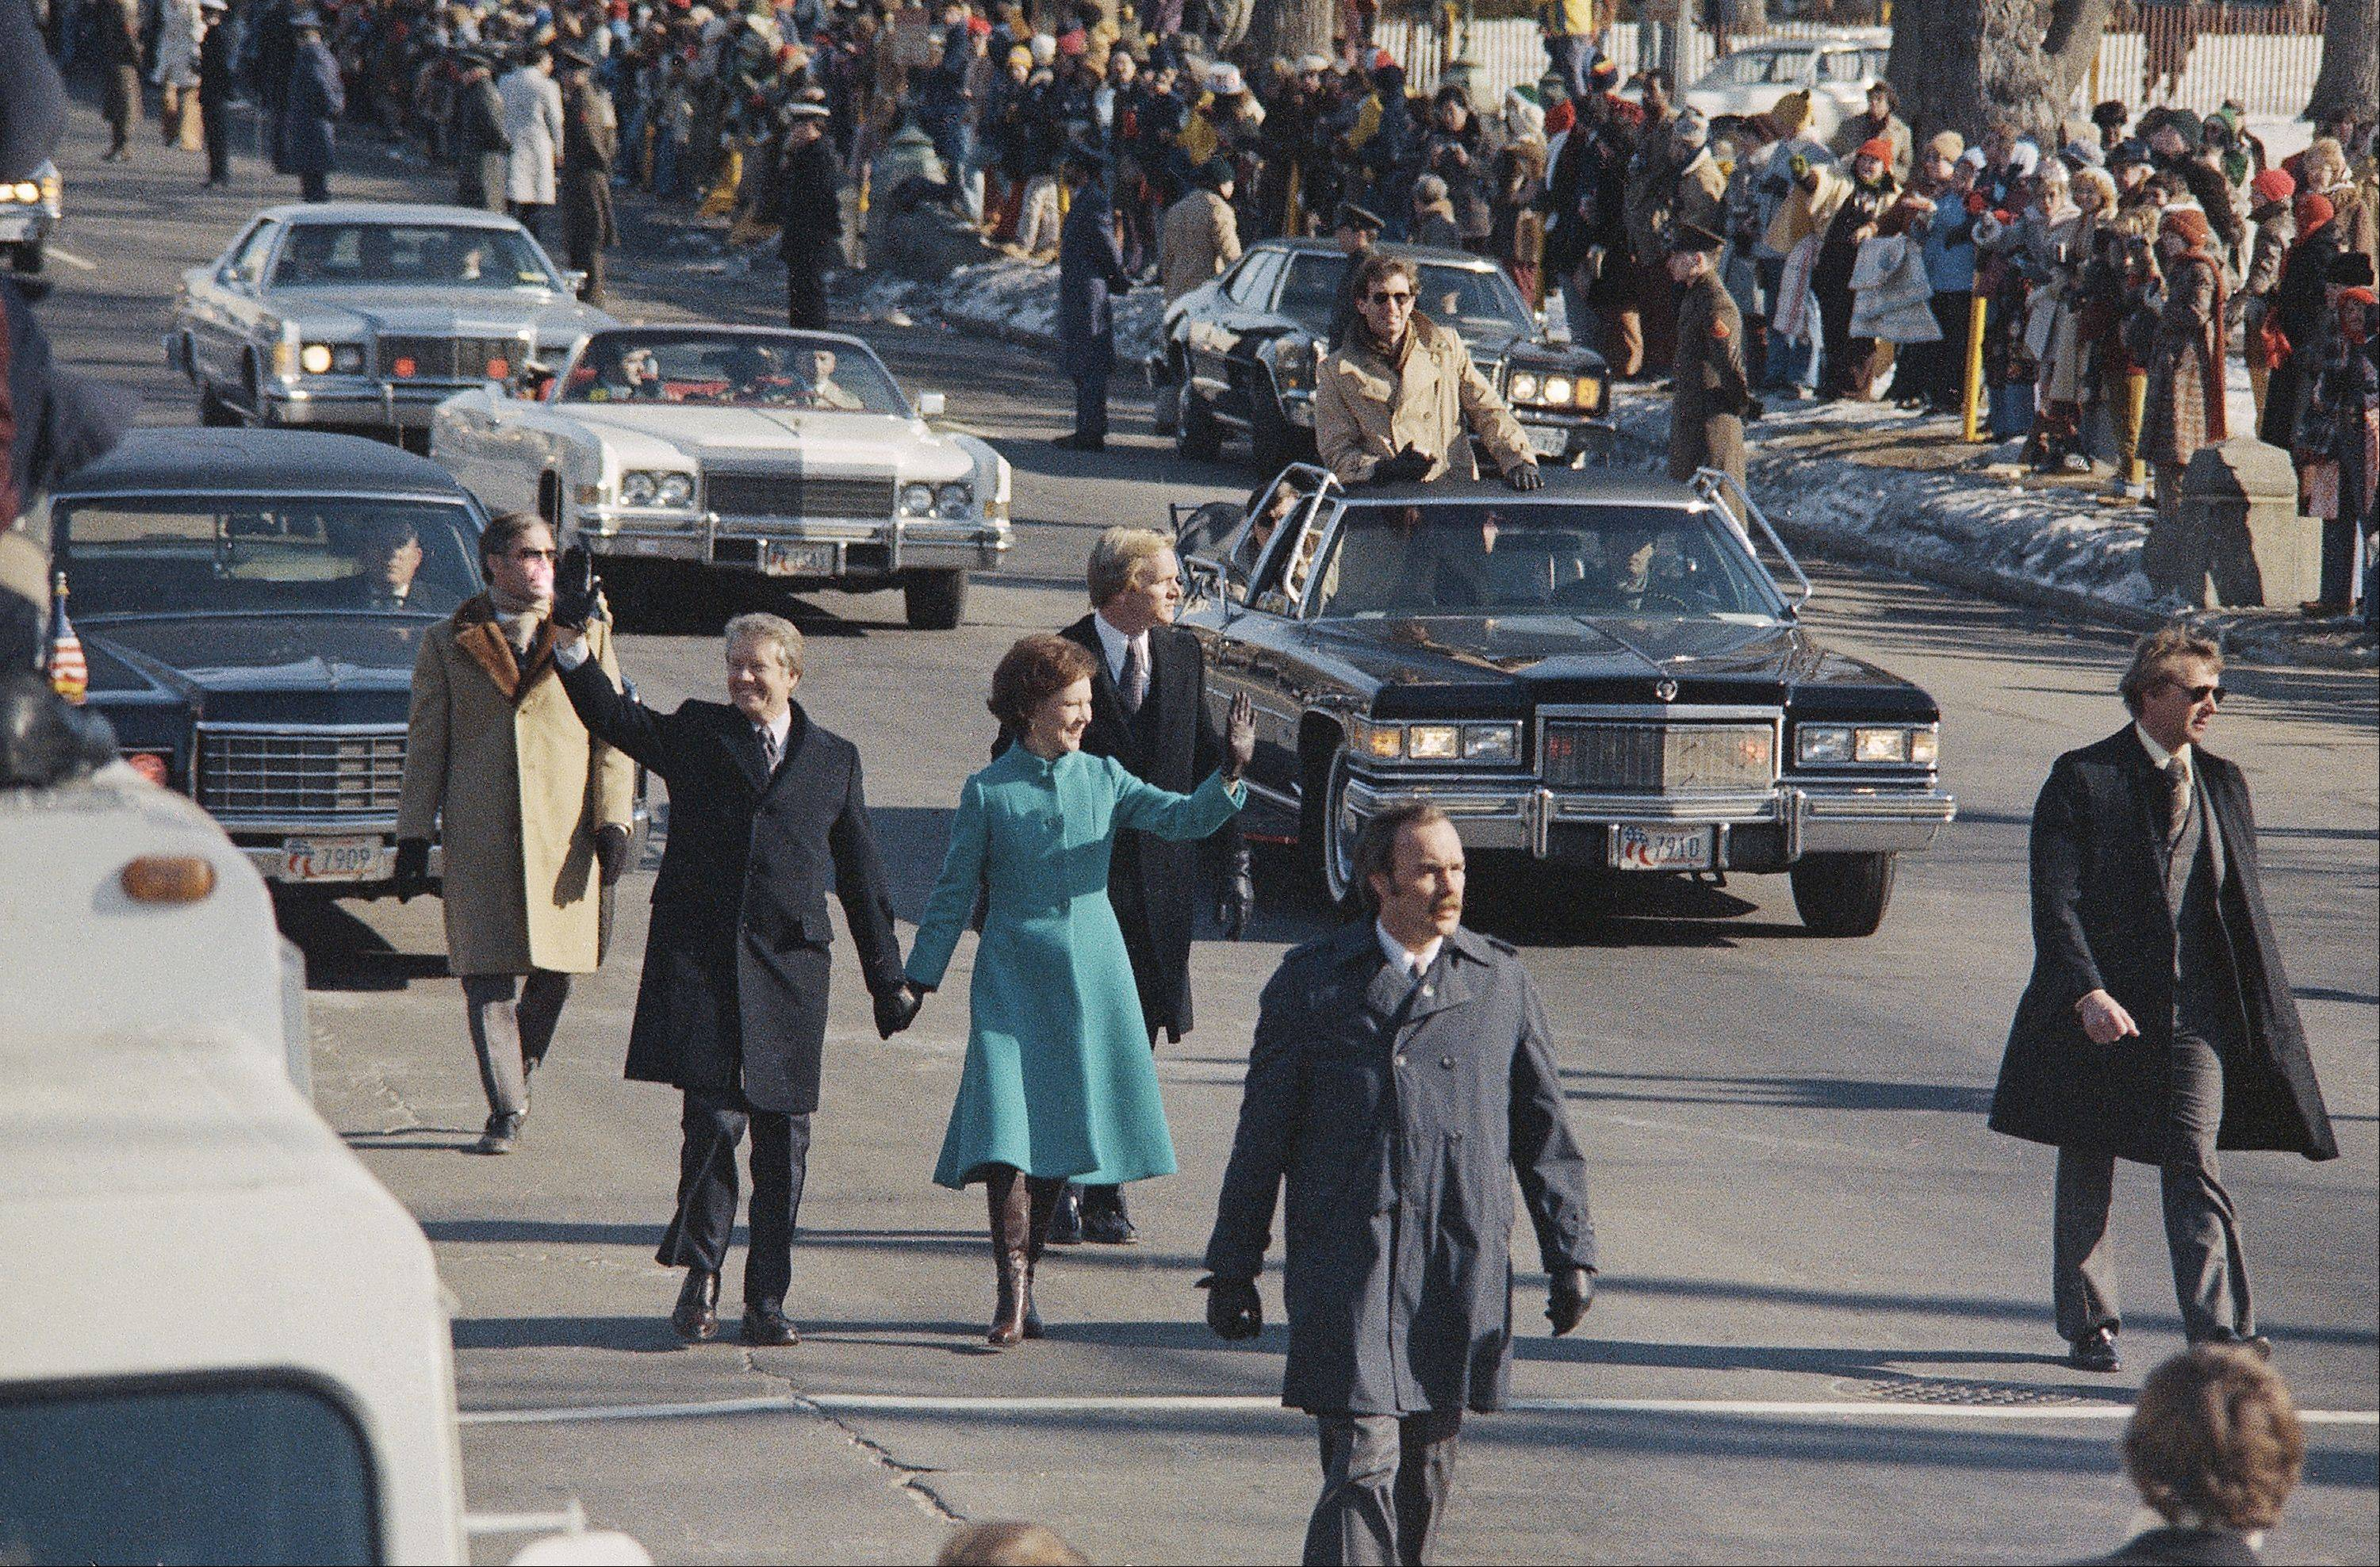 President Jimmy Carter and first lady Rosalynn Carter, center, walk down Pennsylvania Avenue in Washington, D.C., after Carter was sworn in as the nations 39th president on Jan. 20, 1977. Other members of the Carter family follow behind them.